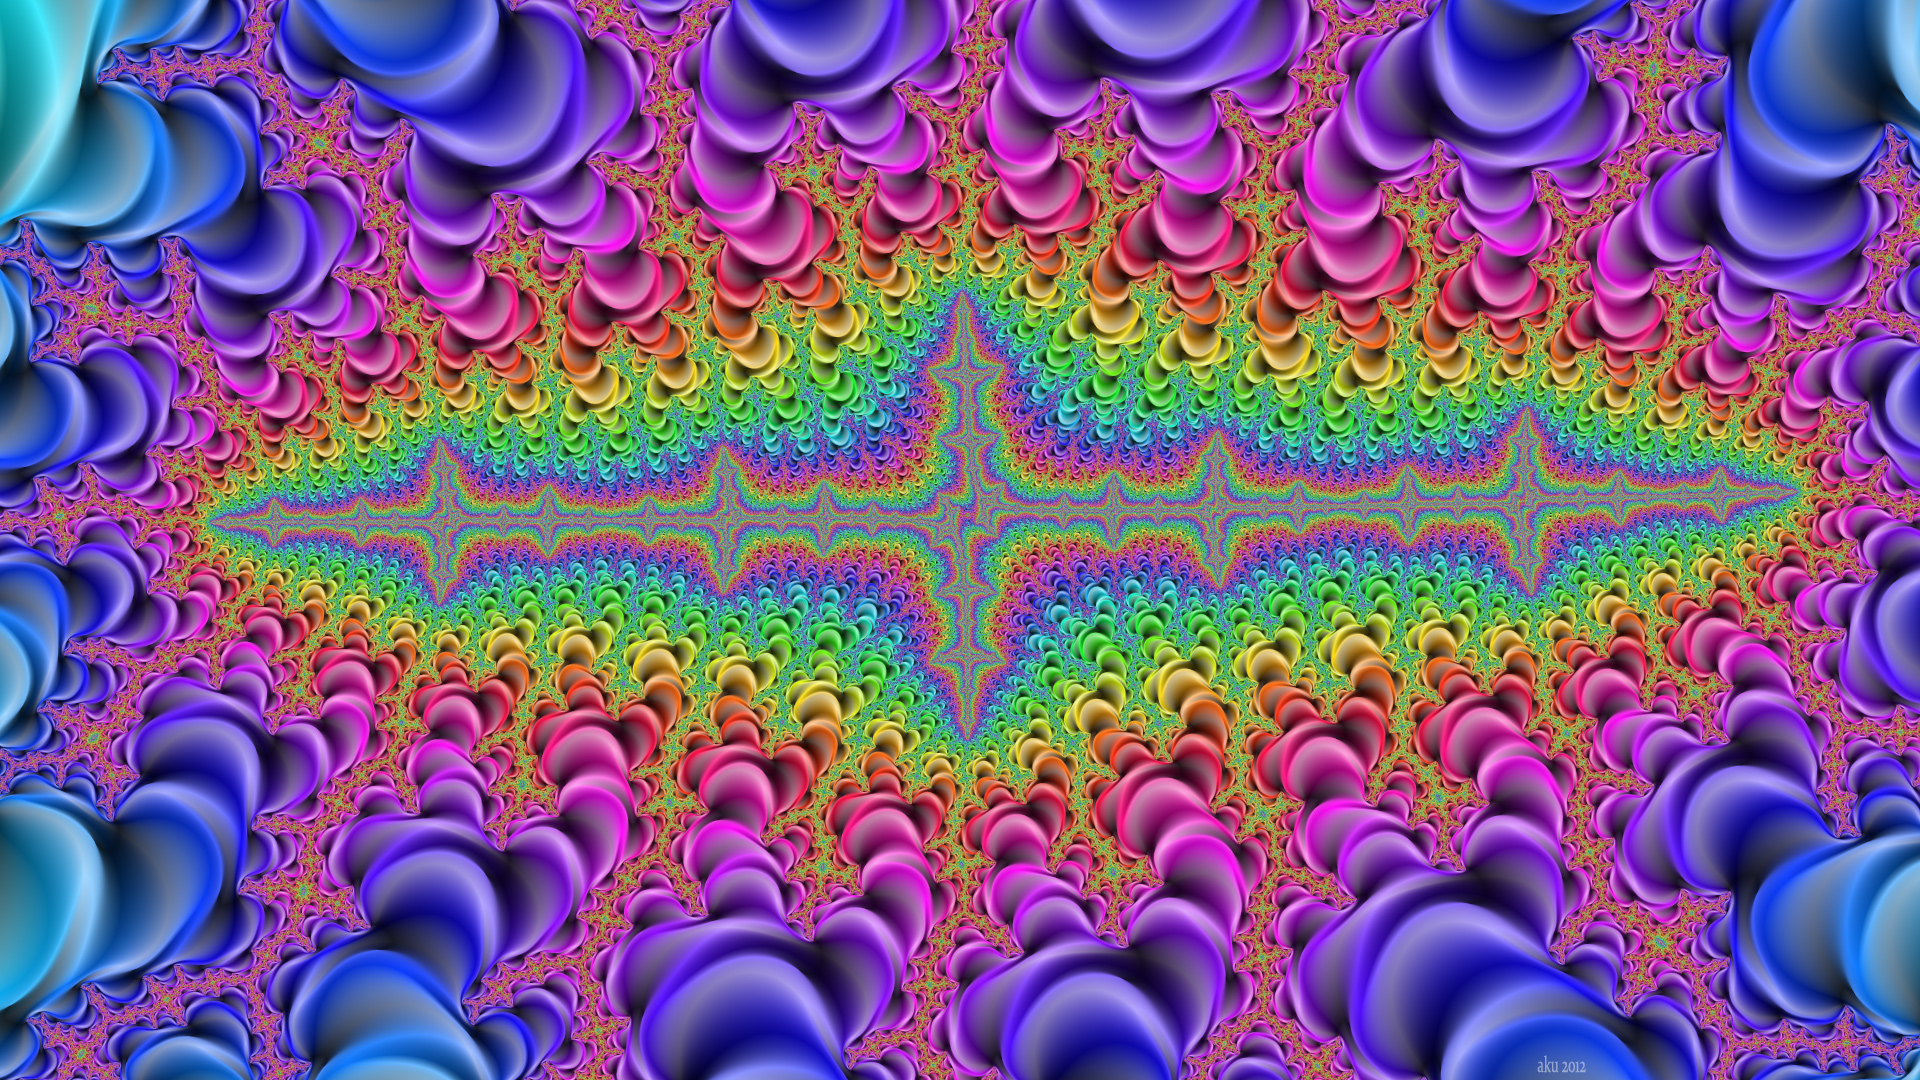 Psychedelic Computer Wallpapers Desktop Backgrounds 1920x1080 ID